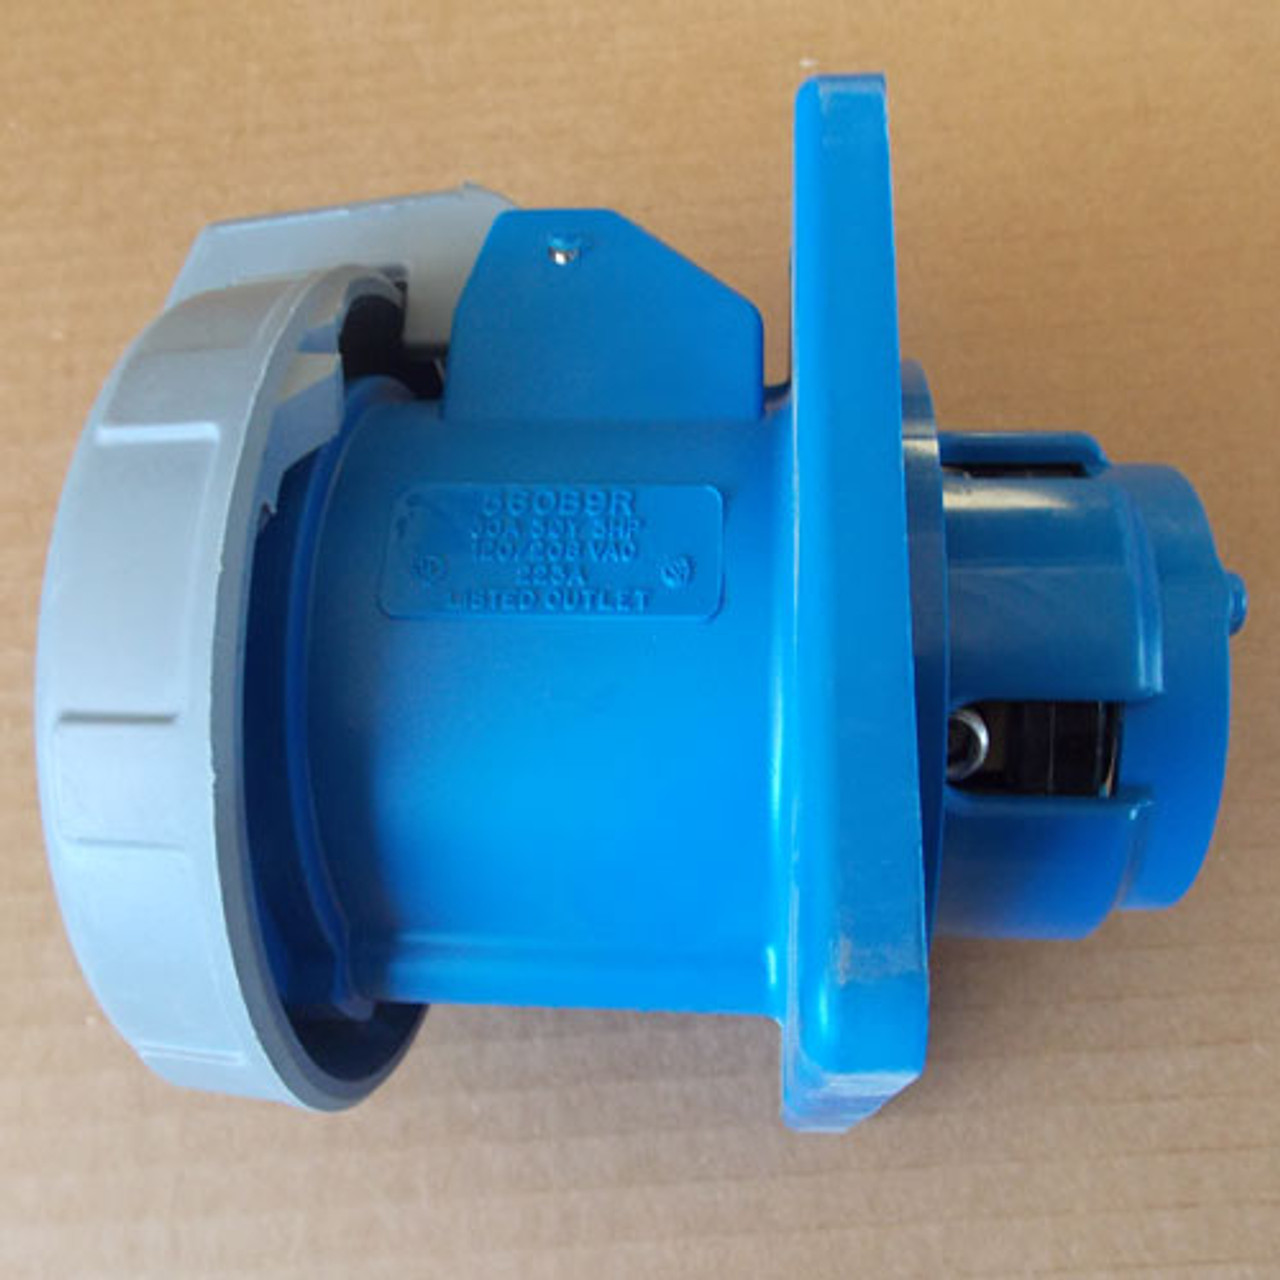 Hubbell HBL560B9R 4 Pole 60A 30Y 3HP 120/208V Watertight P&S Inlet - New